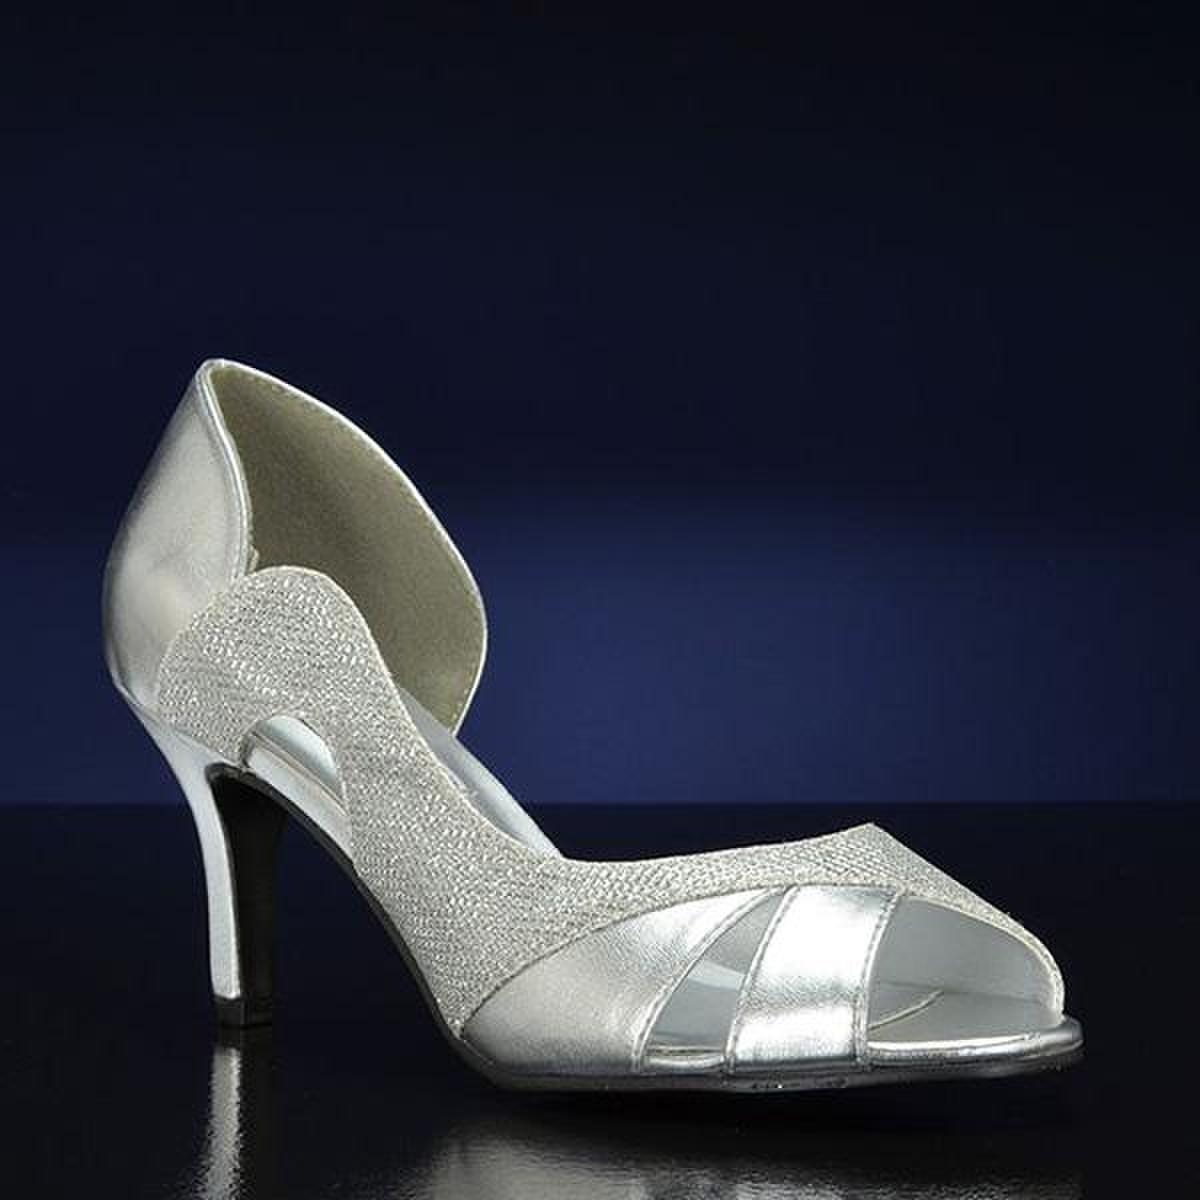 Metallic Low Heel Peep Toe Pump